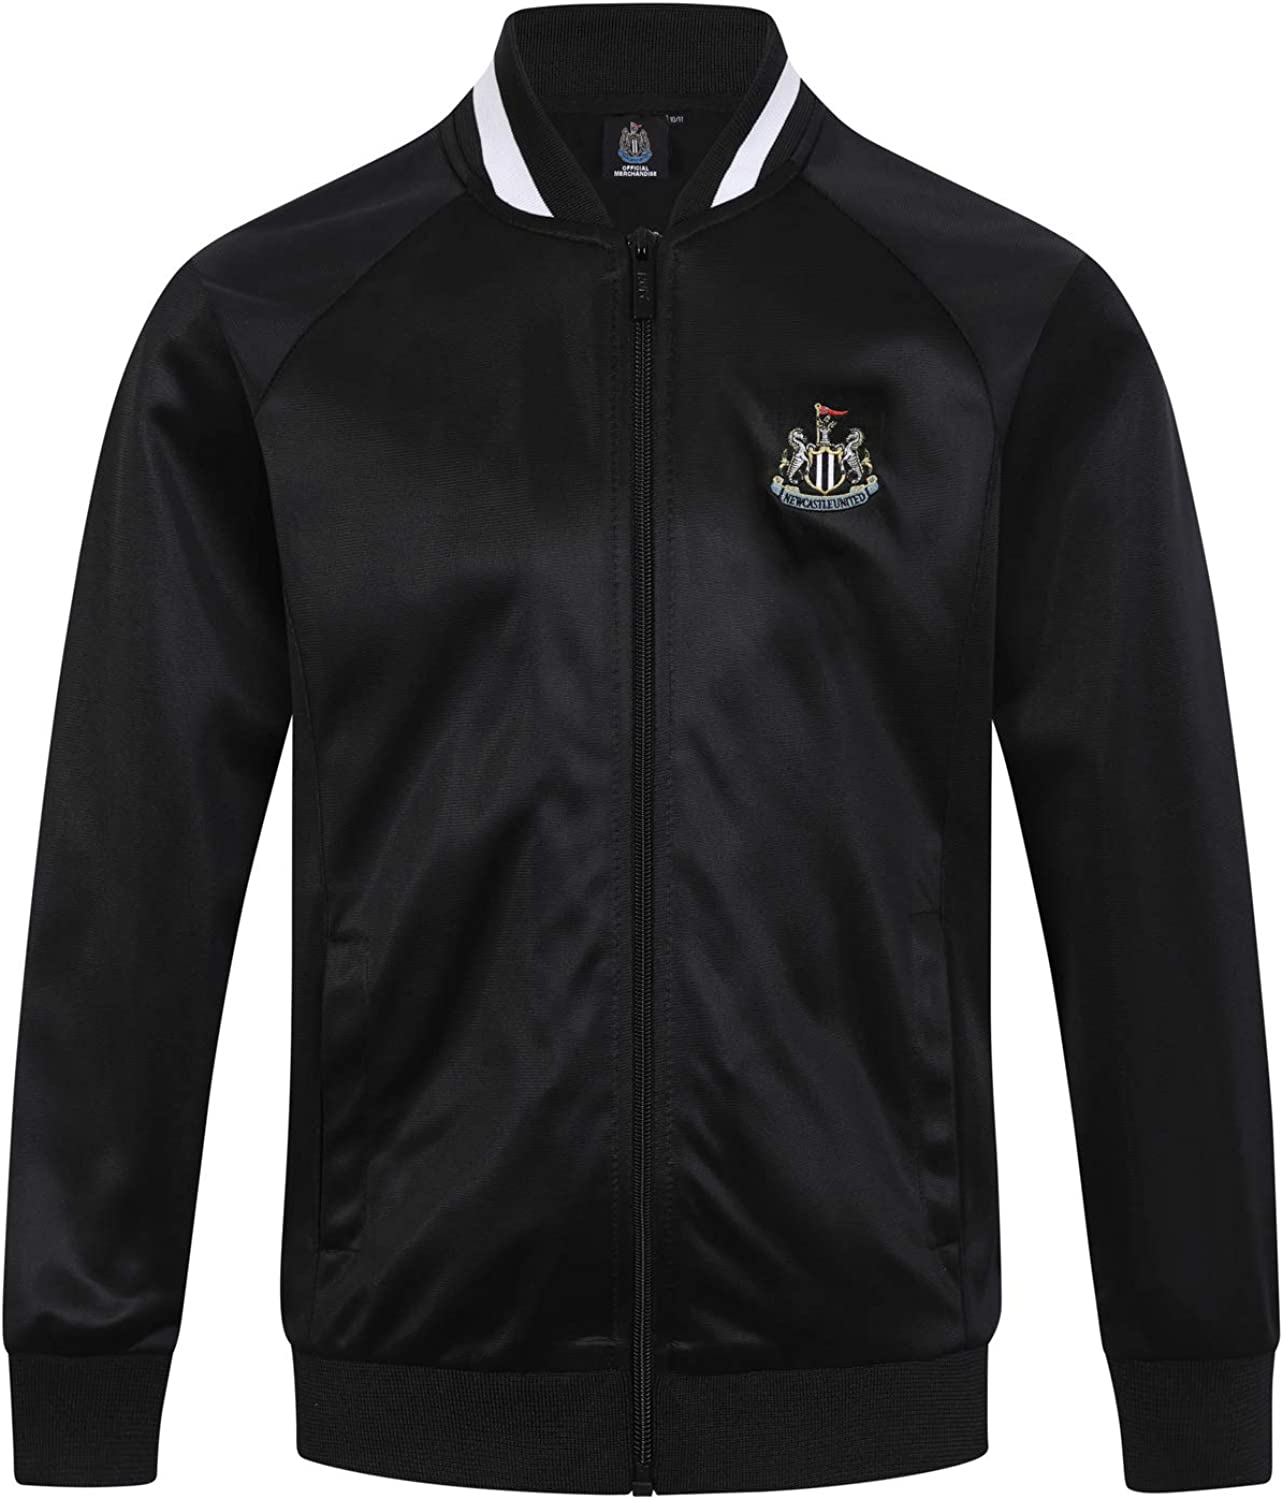 Newcastle United FC Official Football Gift Boys Retro Track Top Jacket